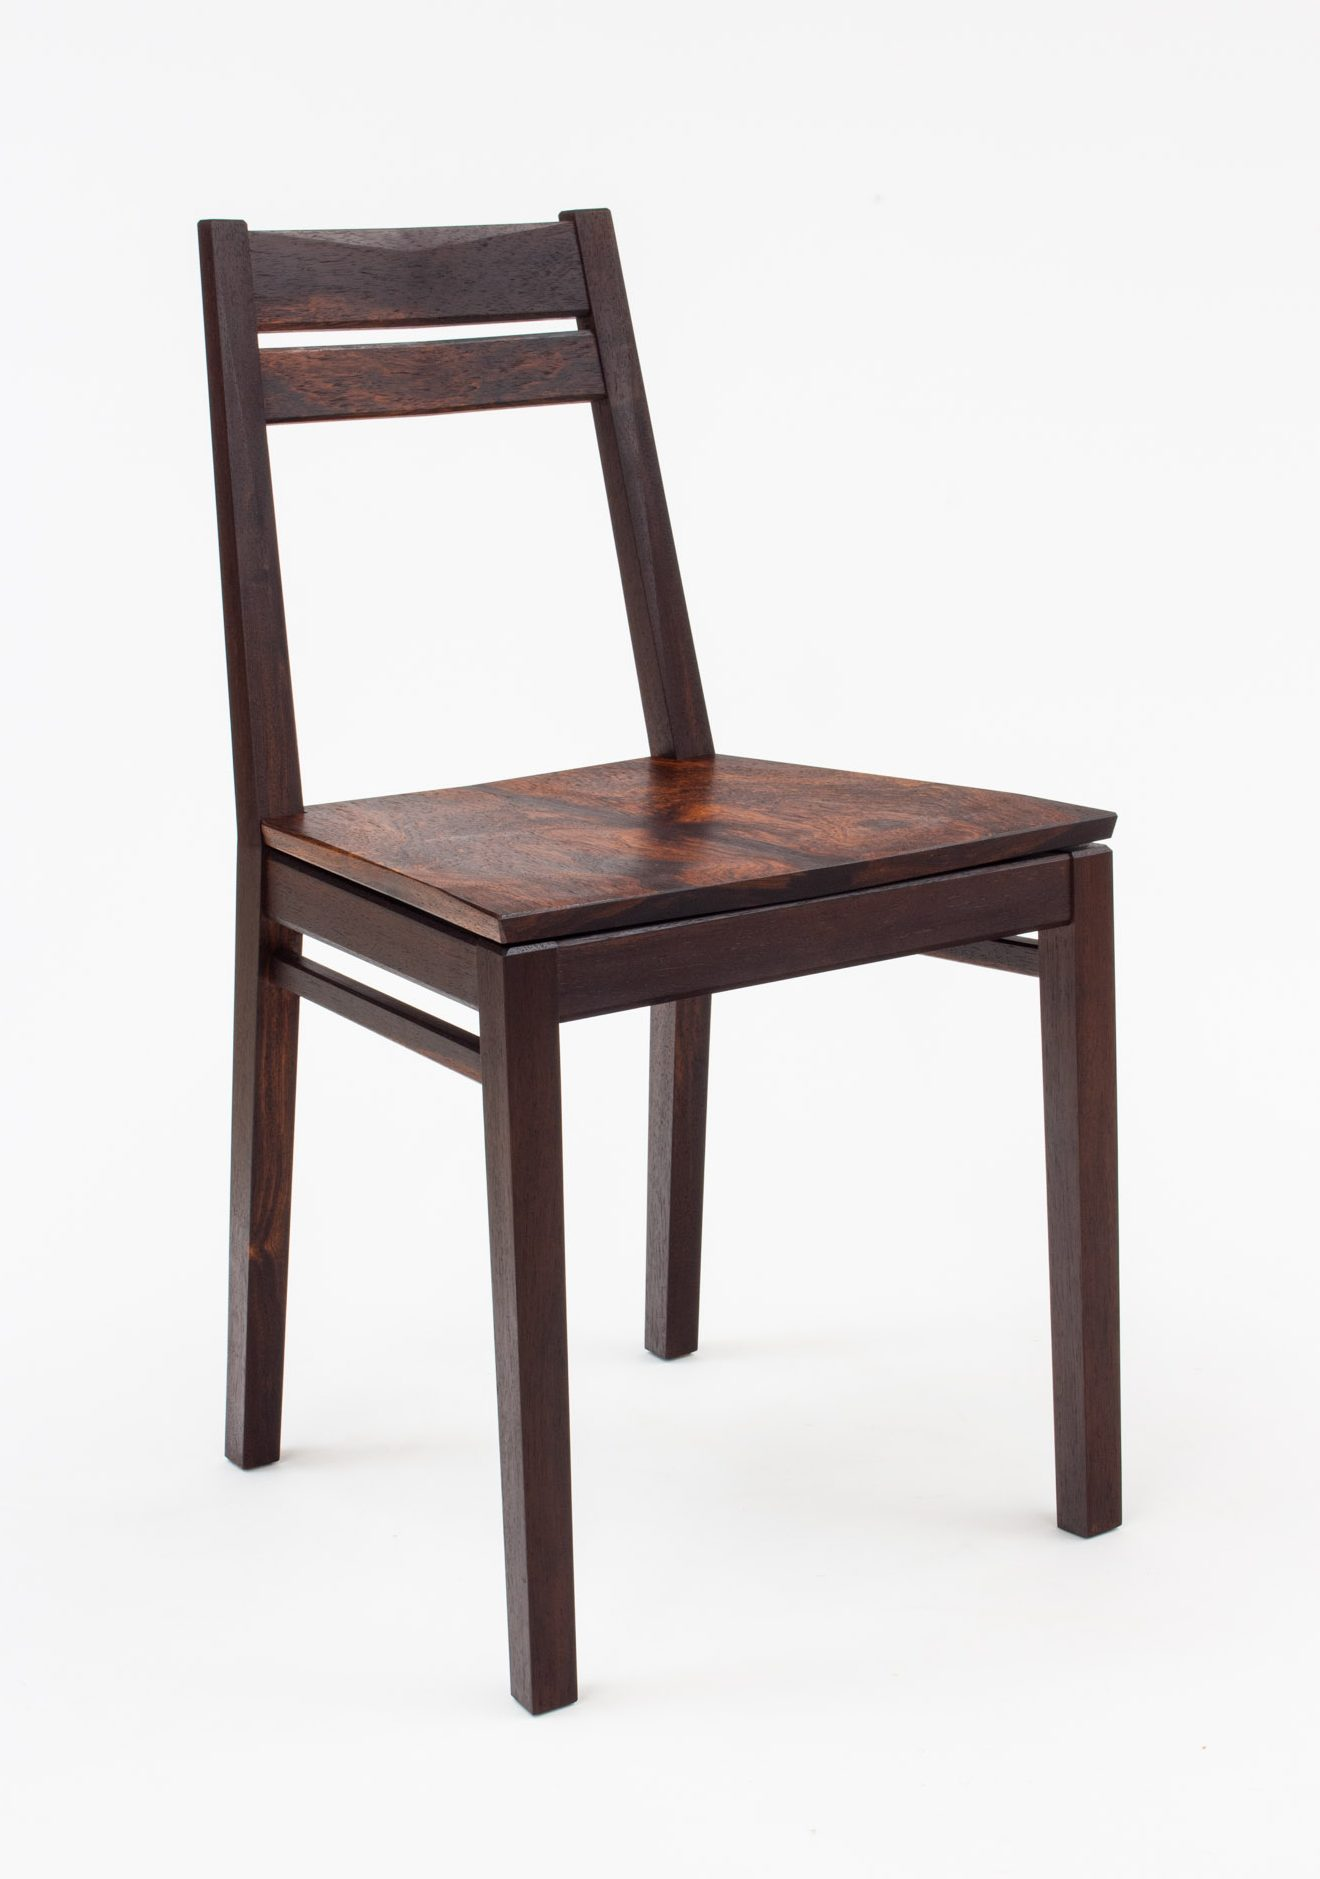 Nelson rosewood chair